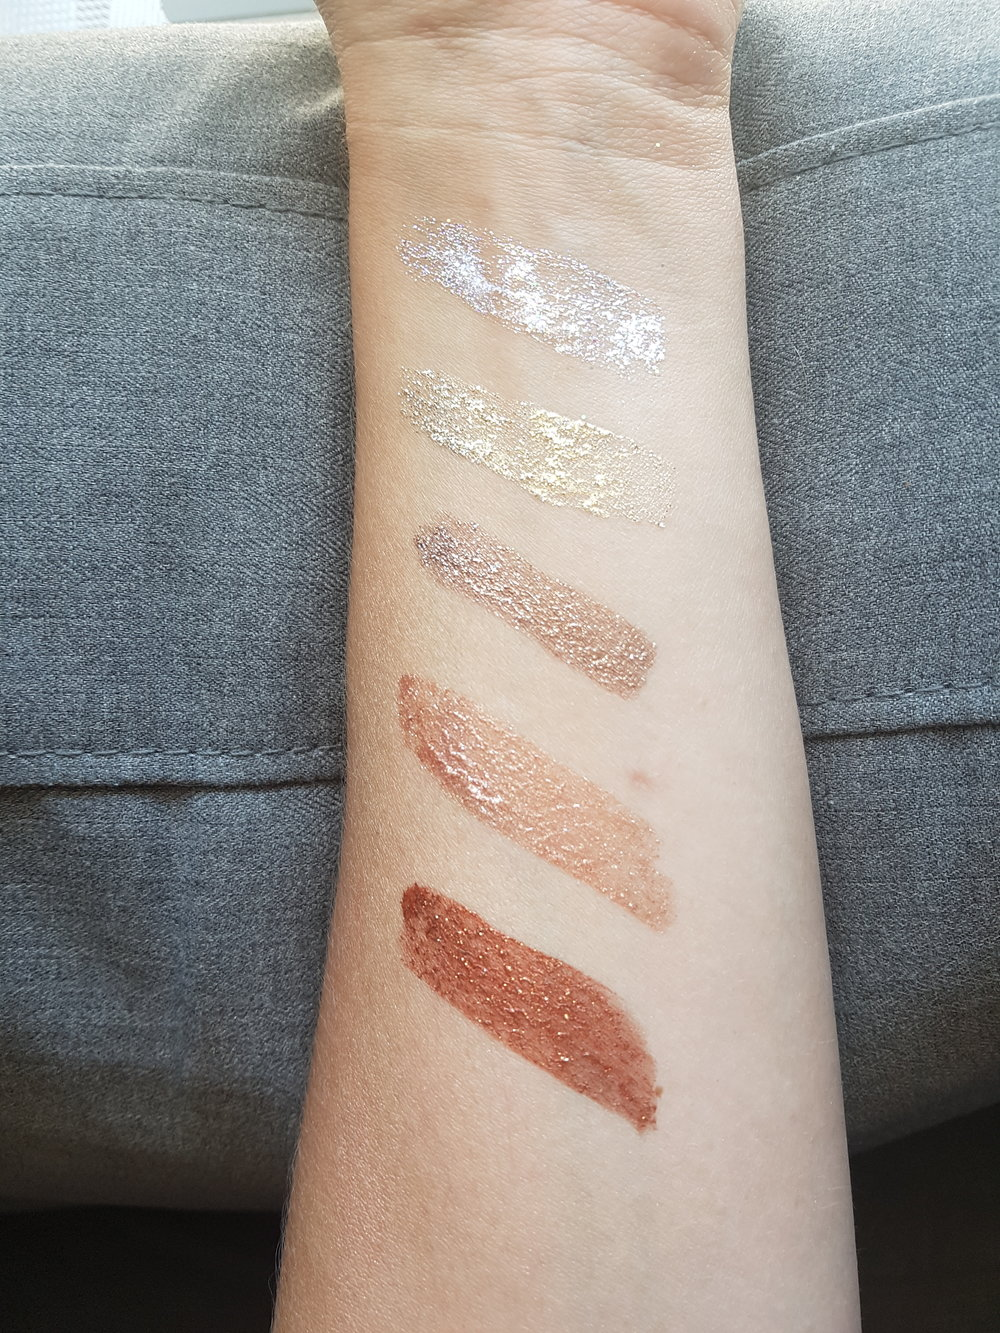 From Top to Bottom;  CrystalLight  SunRay  BareBrilliance  RoseGold  PassionLight